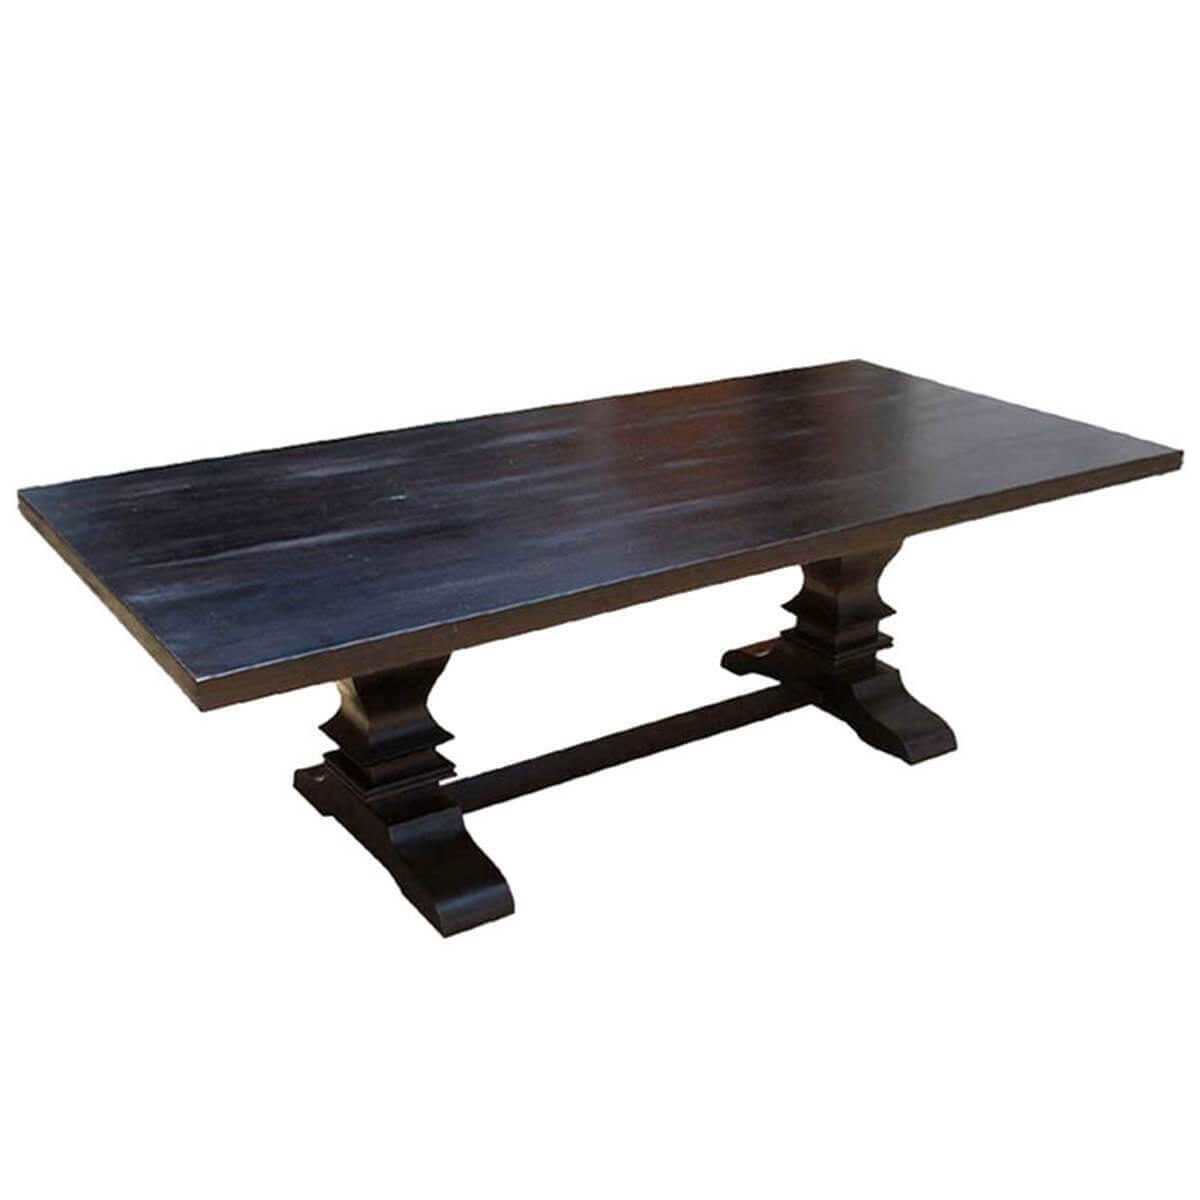 Nottingham Solid Wood Trestle Pedestal Rectangular Dining Table. Trestle Pedestal Solid Wood Nottingham Rectangular Dining Table